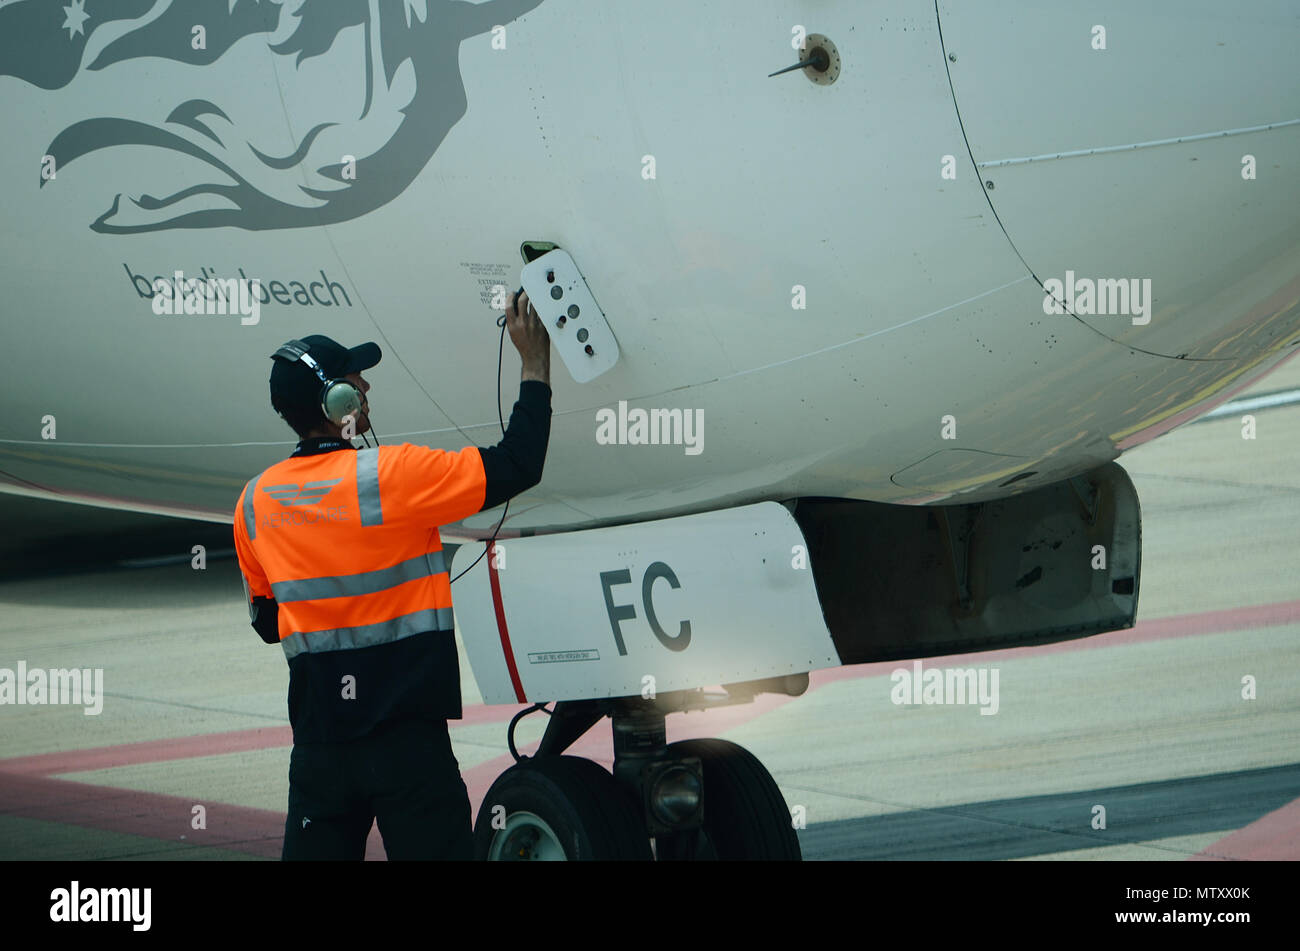 passenger jet, pre flight checks - Stock Image